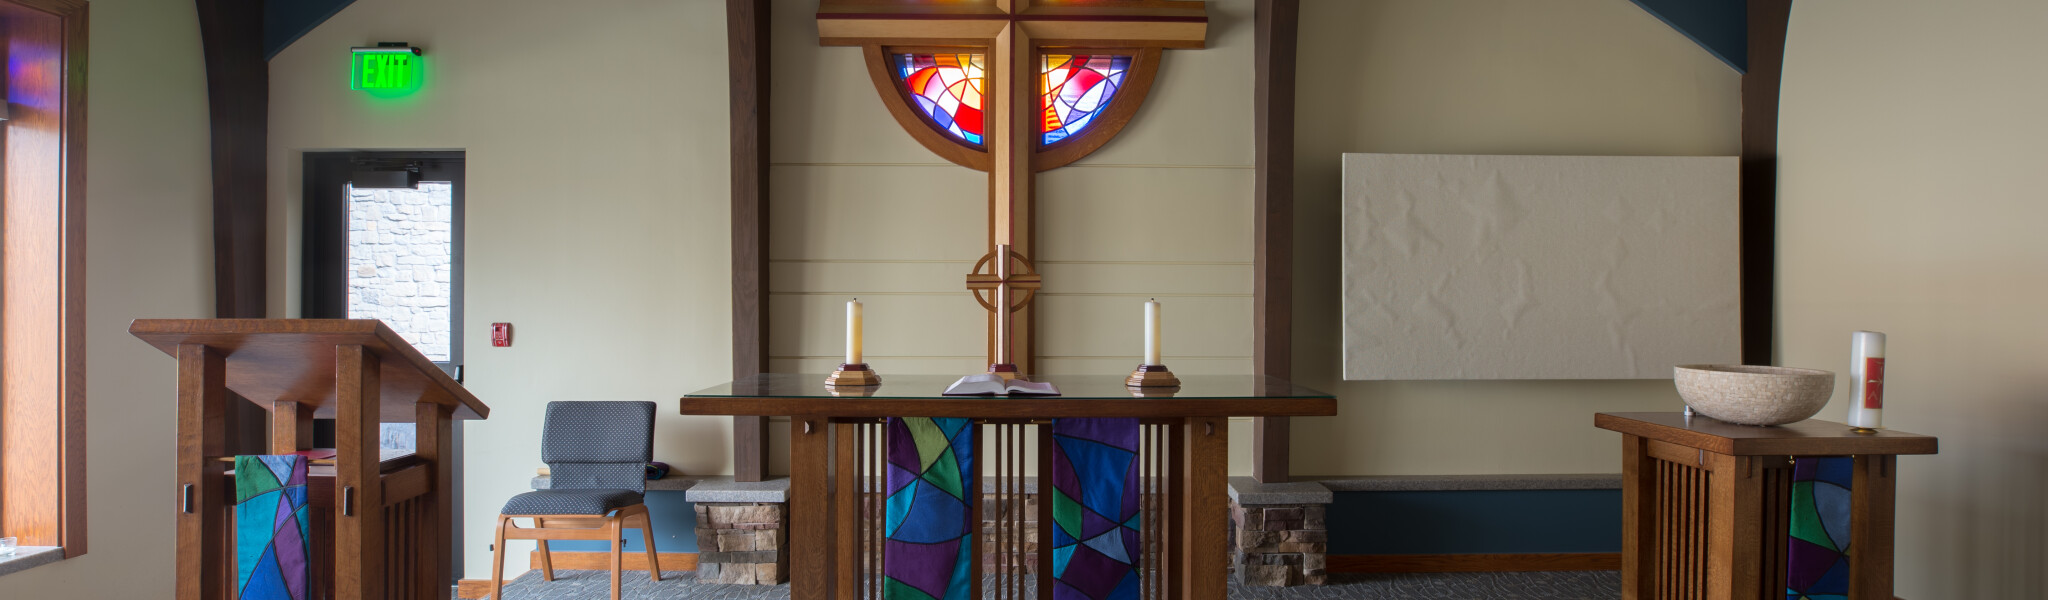 Prayer | Cornerstone Lutheran Church | Cornerstone Lutheran Church